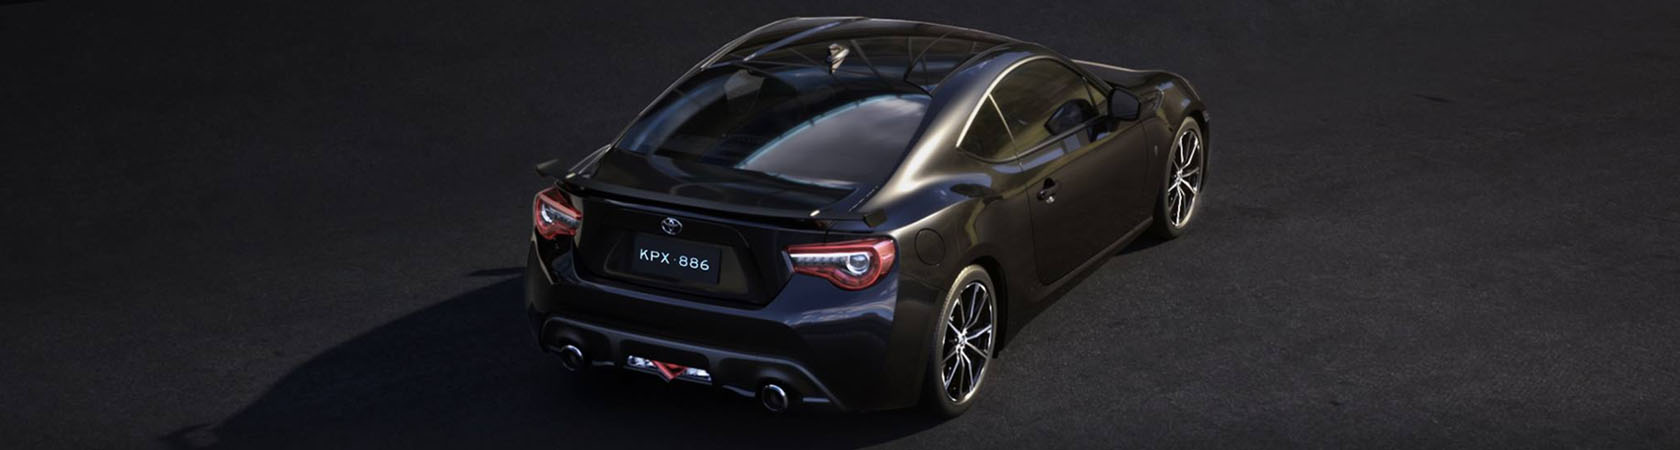 Jacob Toyota 86